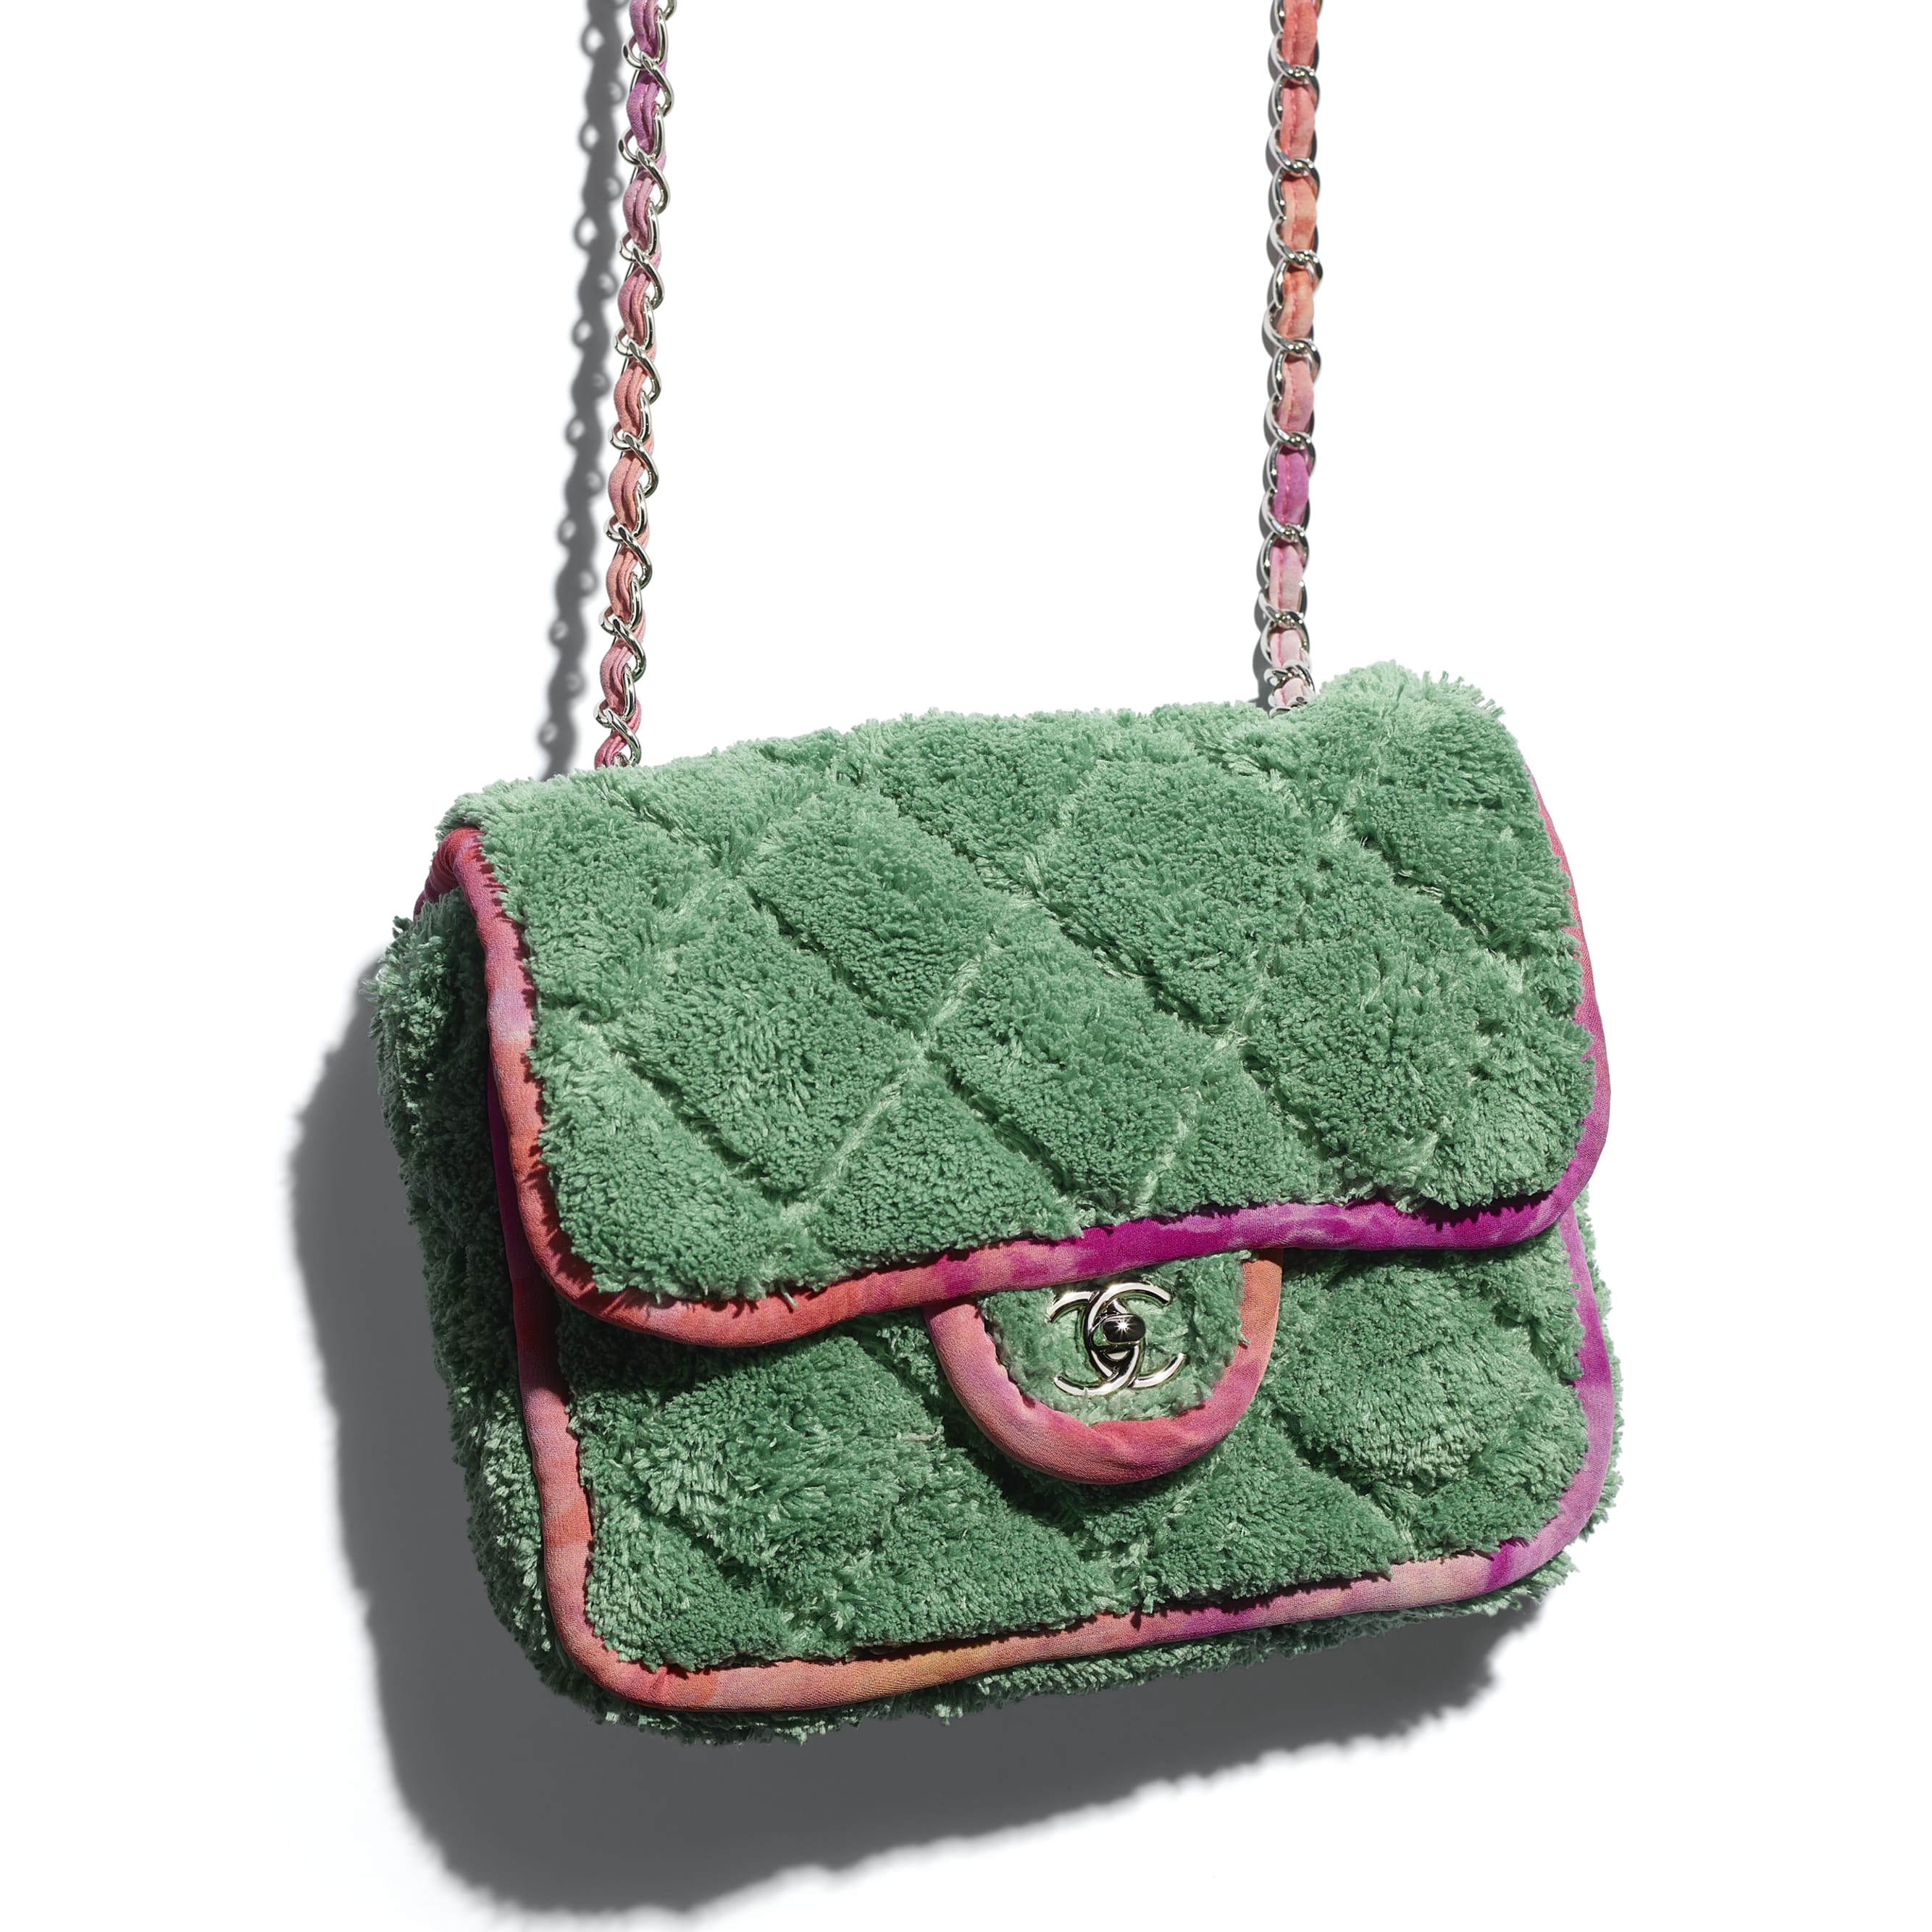 Flap Bag - Green - Mixed Fibers & Silver-Tone Metal - CHANEL - Extra view - see standard sized version